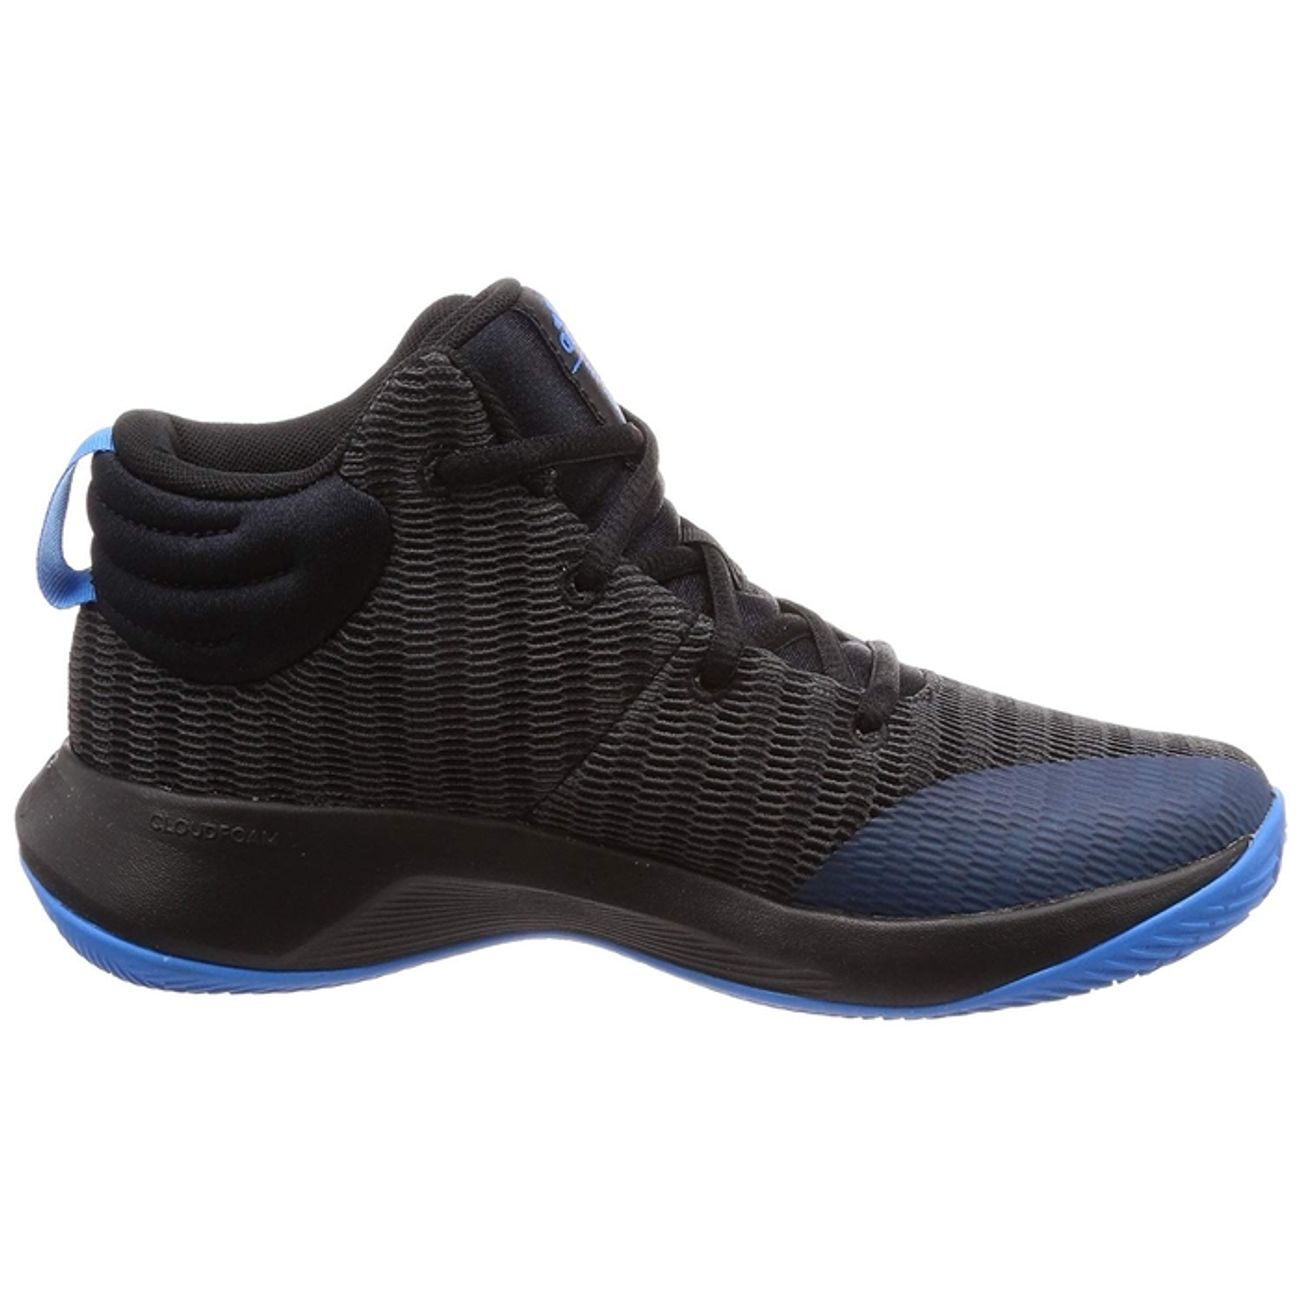 100% authentic fe6fc 1e9da ... CHAUSSURES HAUTES Basketball homme ADIDAS PRO ELEVATE 2018 ...